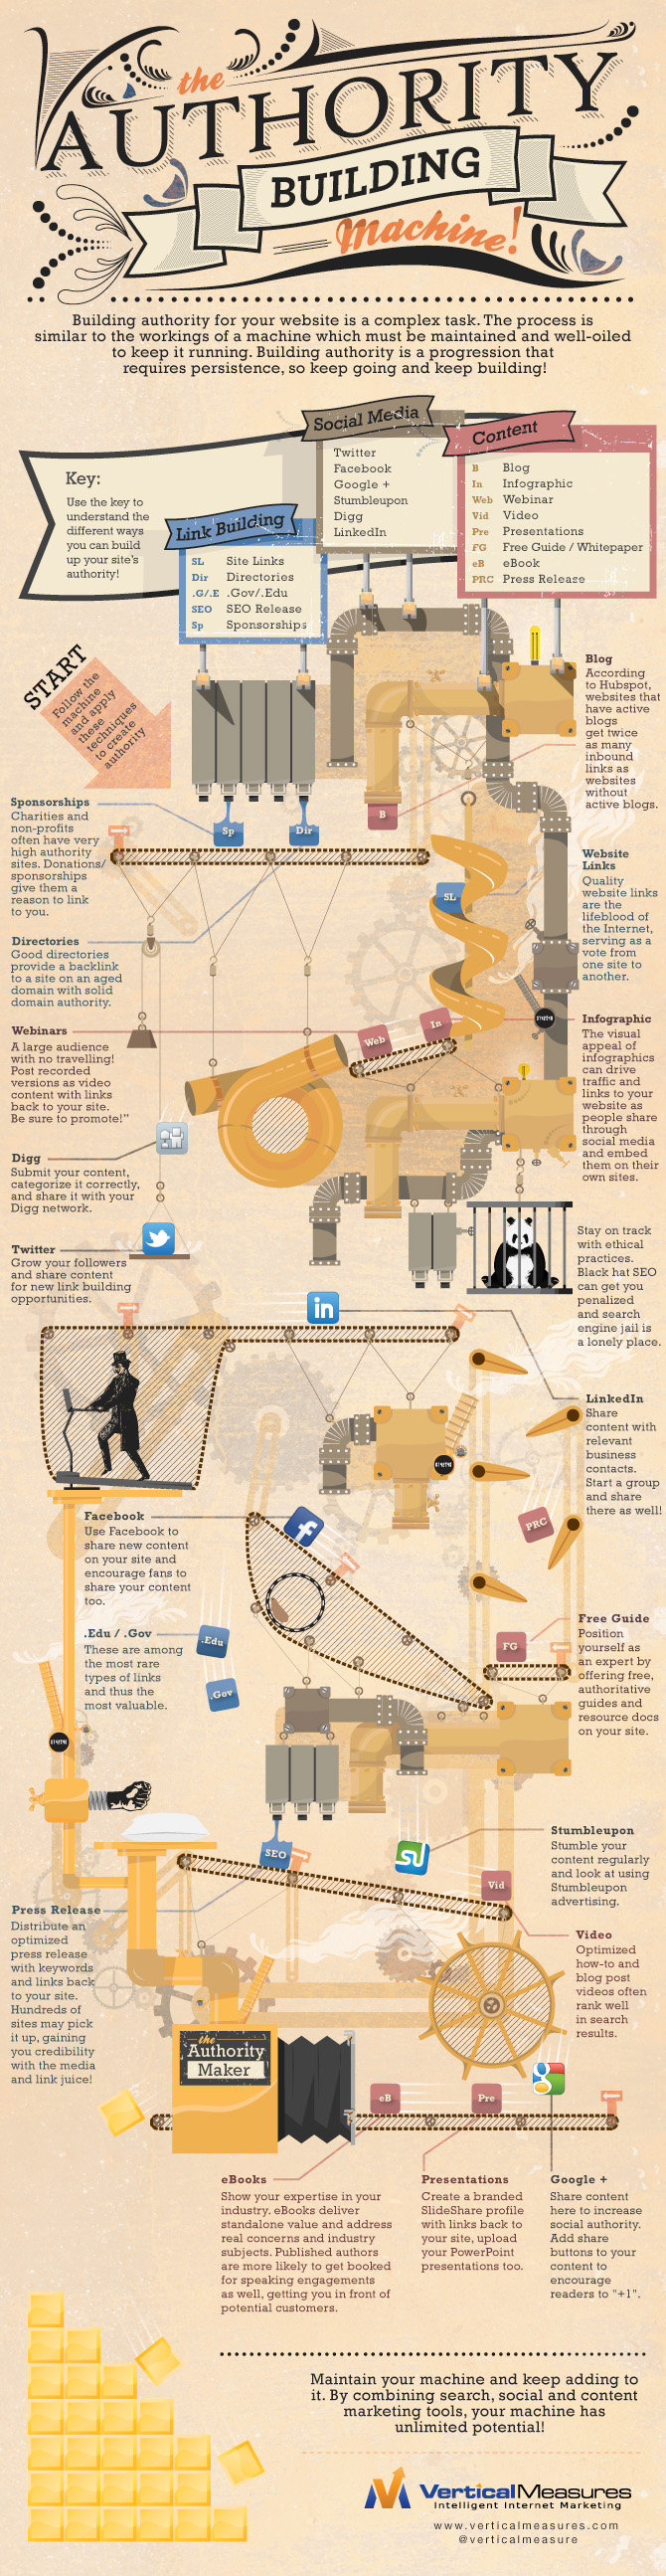 The authority building machine #infographic